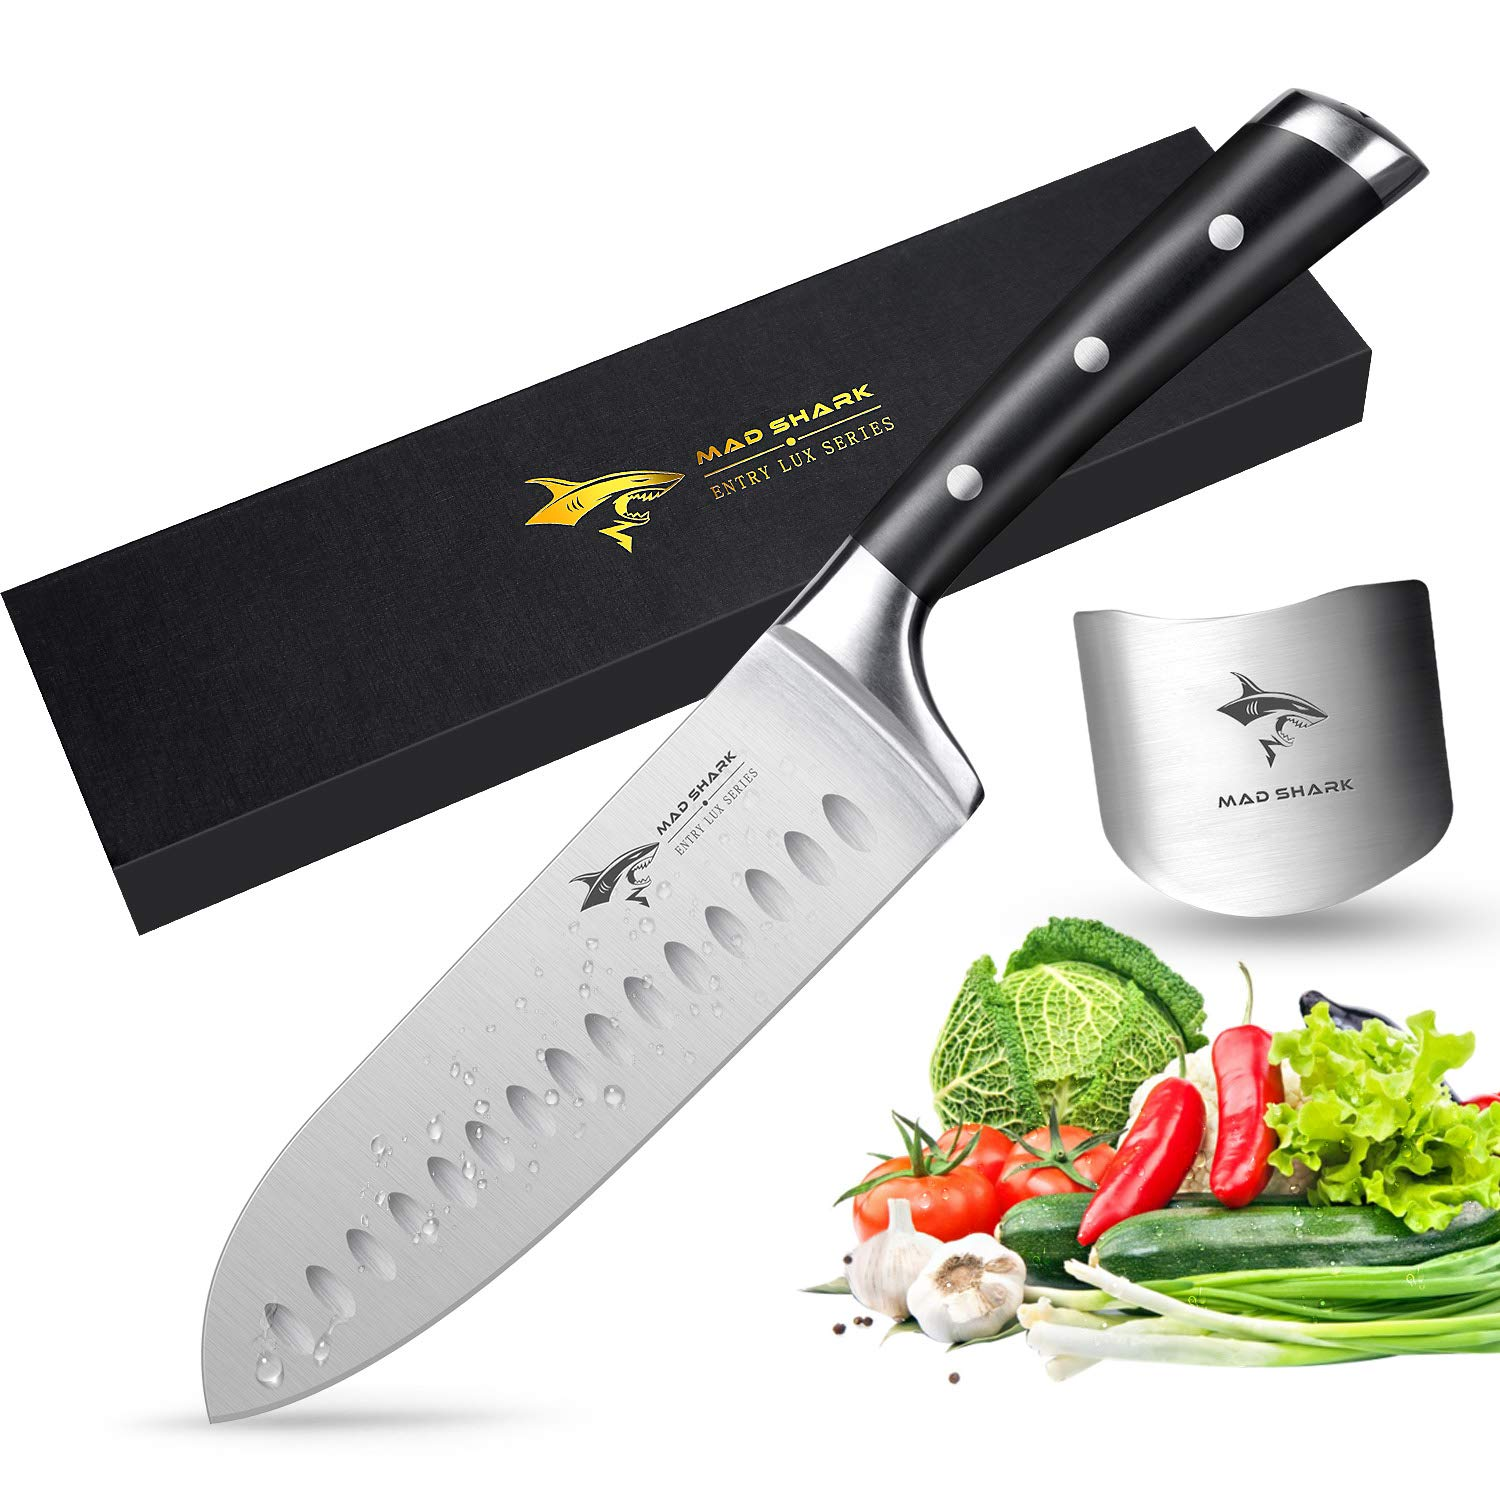 Santoku Knife - MAD SHARK Pro Kitchen Knives 7 Inch Chef's Knife, Best Quality German High Carbon Stainless Steel Knife with Ergonomic Handle, Ultra Sharp, Best Choice for Home Kitchen and Restaurant by MAD SHARK